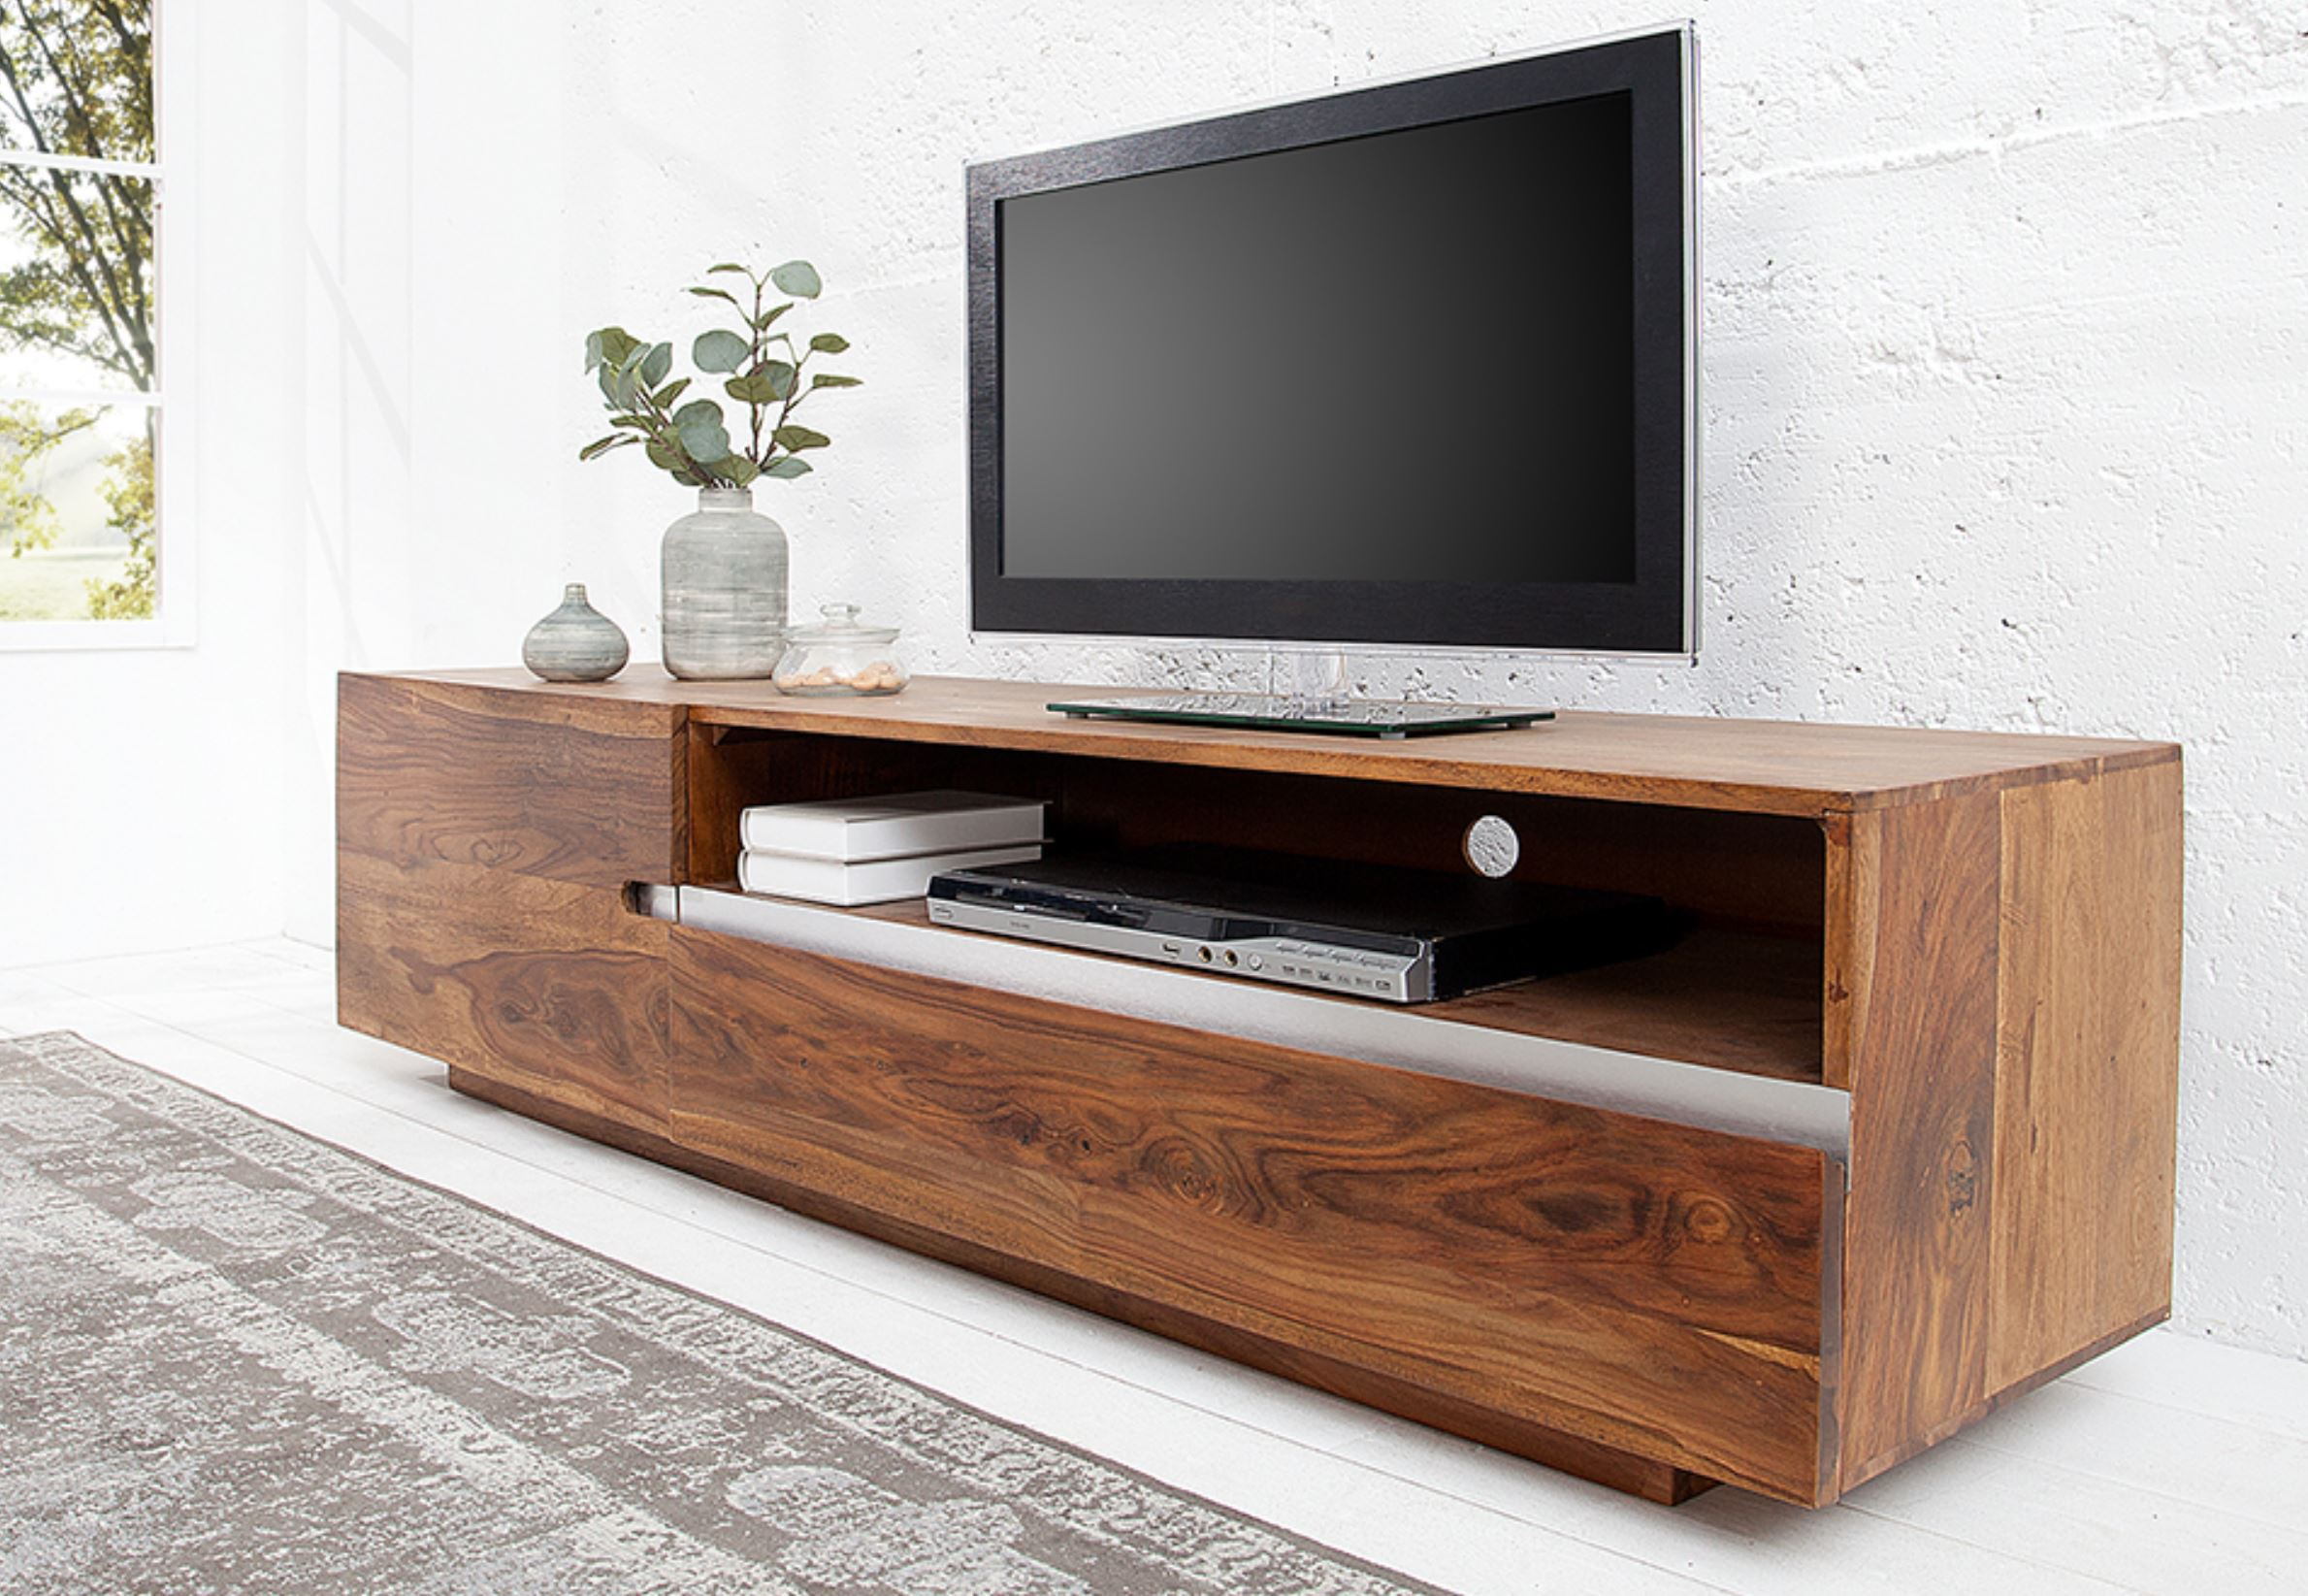 Meuble tv en bois design id es de d coration int rieure french decor for Meuble tv deco